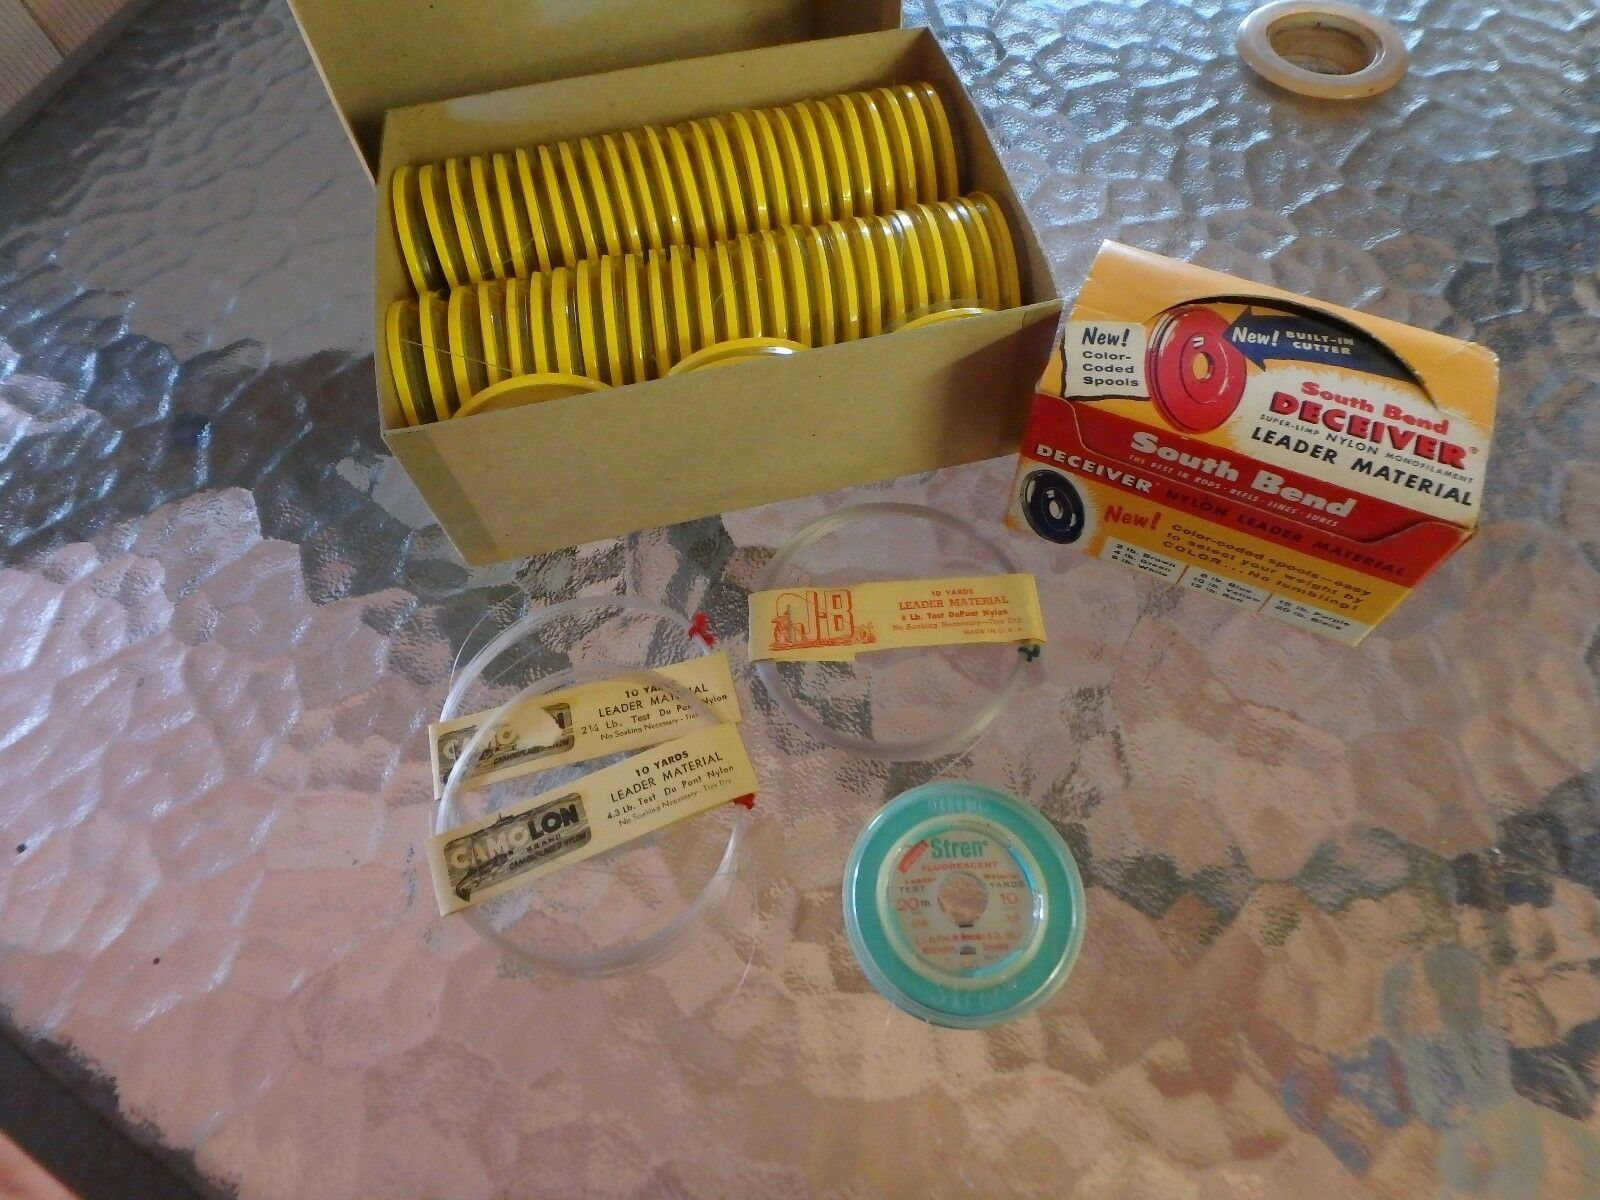 Vintage South Bend Western  Leader Material Spools Deceiver JB Camolon Stren   top brands sell cheap